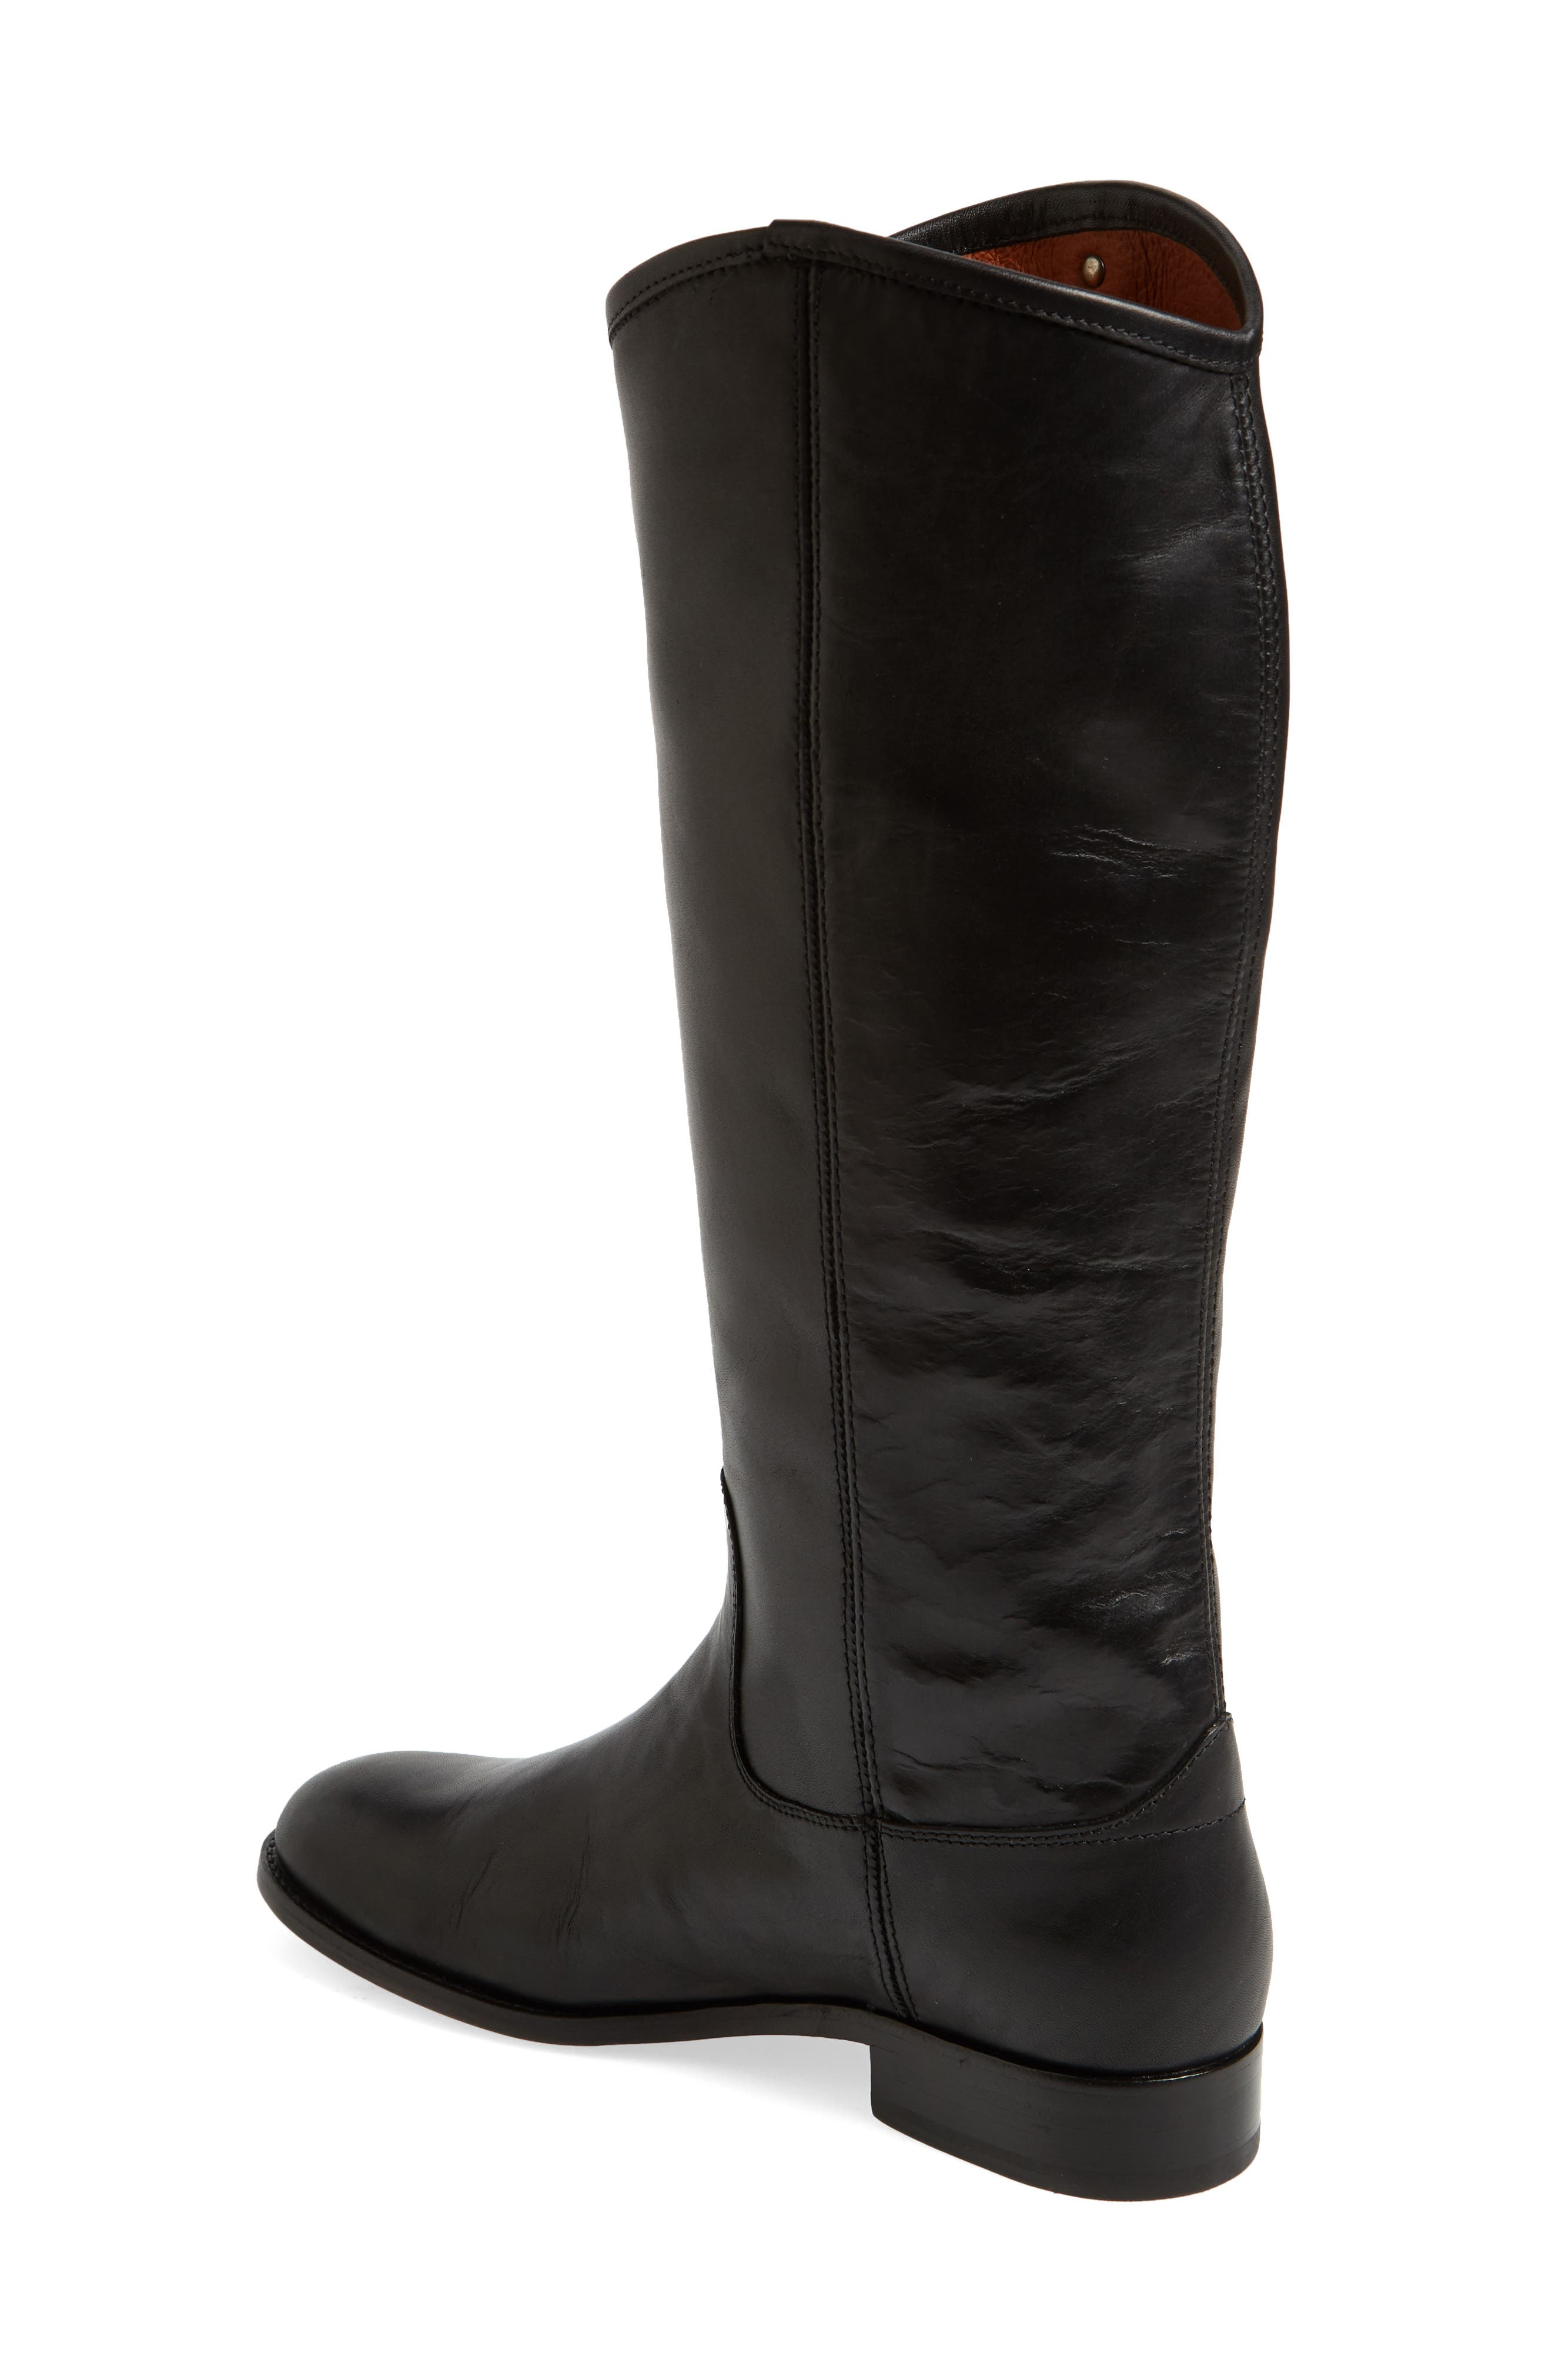 FRYE, Melissa Button 2 Knee High Boot, Alternate thumbnail 2, color, BLACK LEATHER